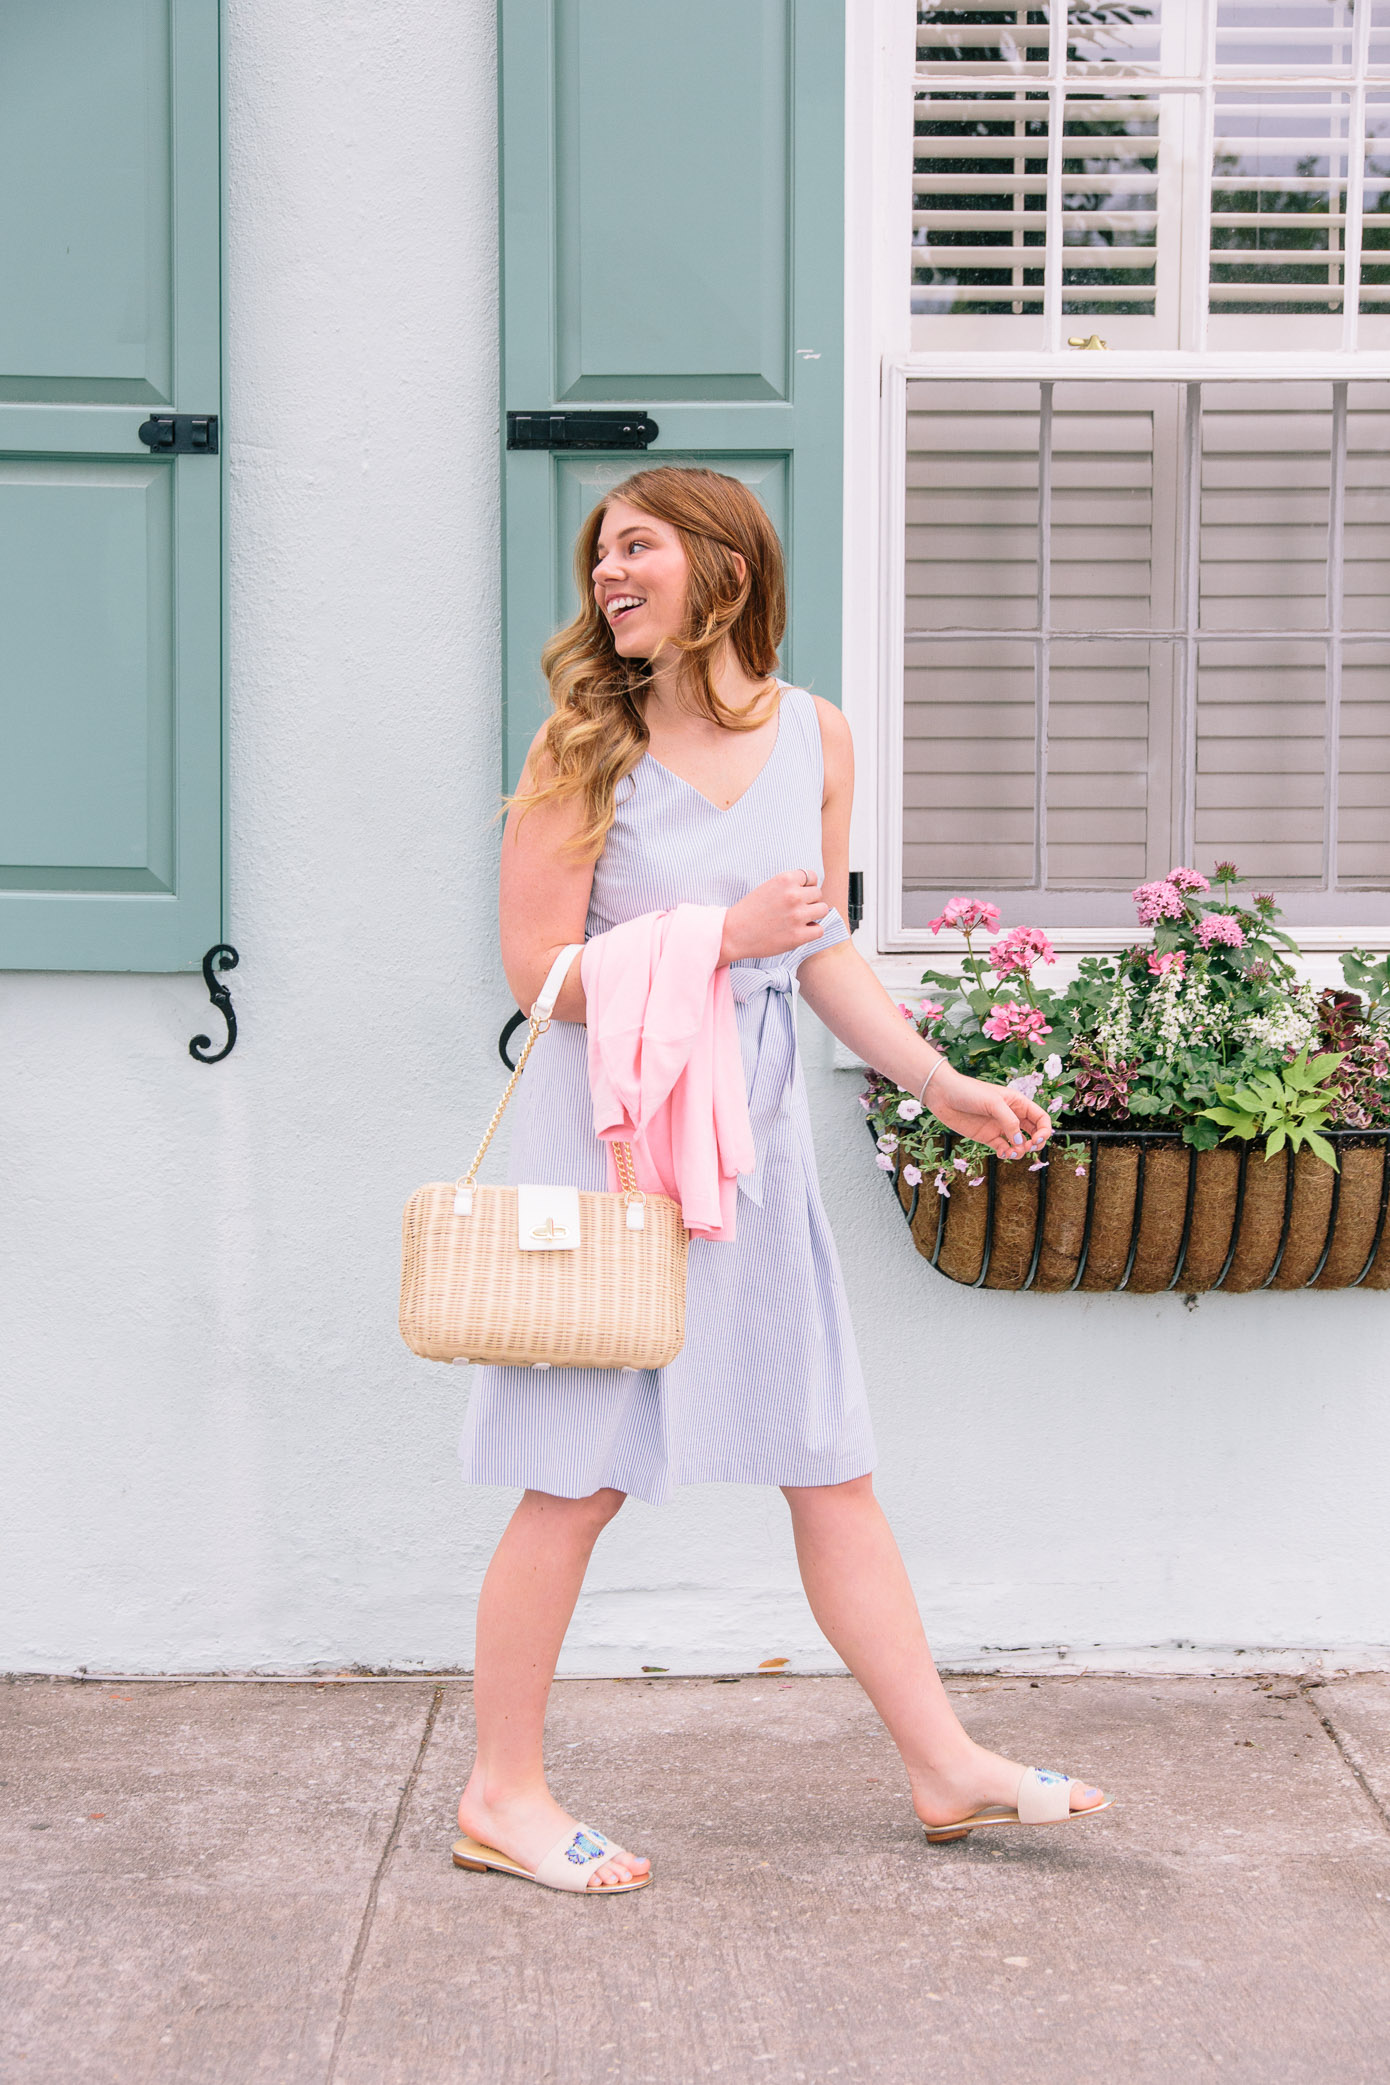 Seersucker Fit and Flare Dress | Talbots Friends & Family Event | Louella Reese Life & Style Blog